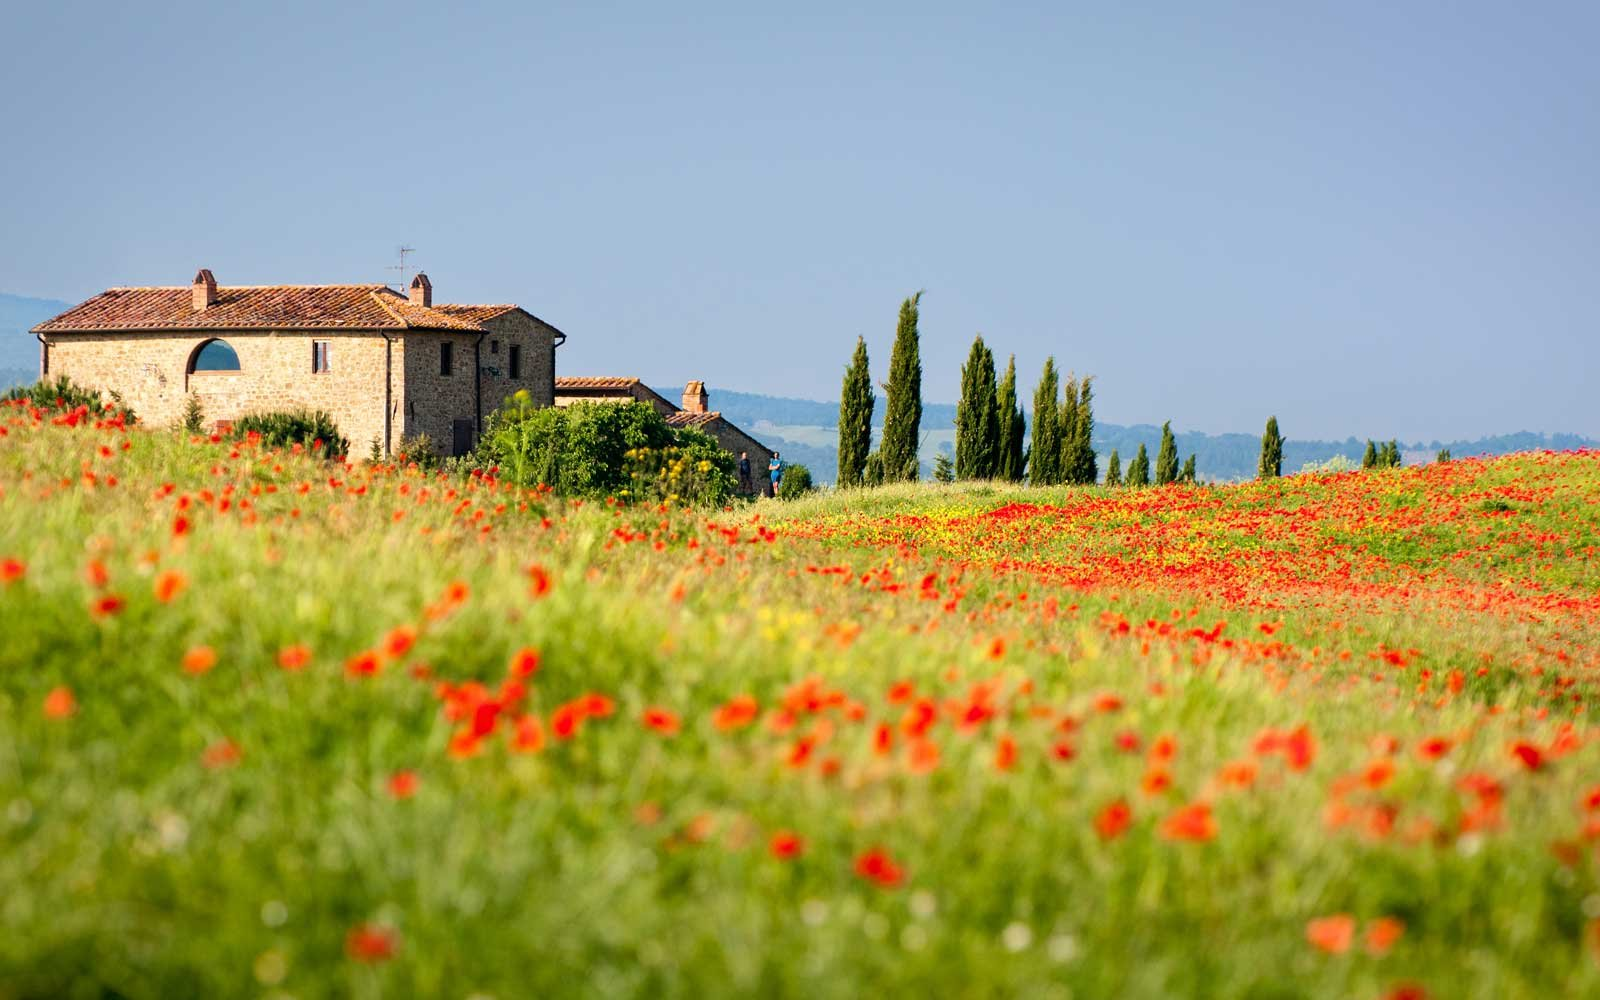 How to Spend a Week in a Castle in Tuscany for Cheap